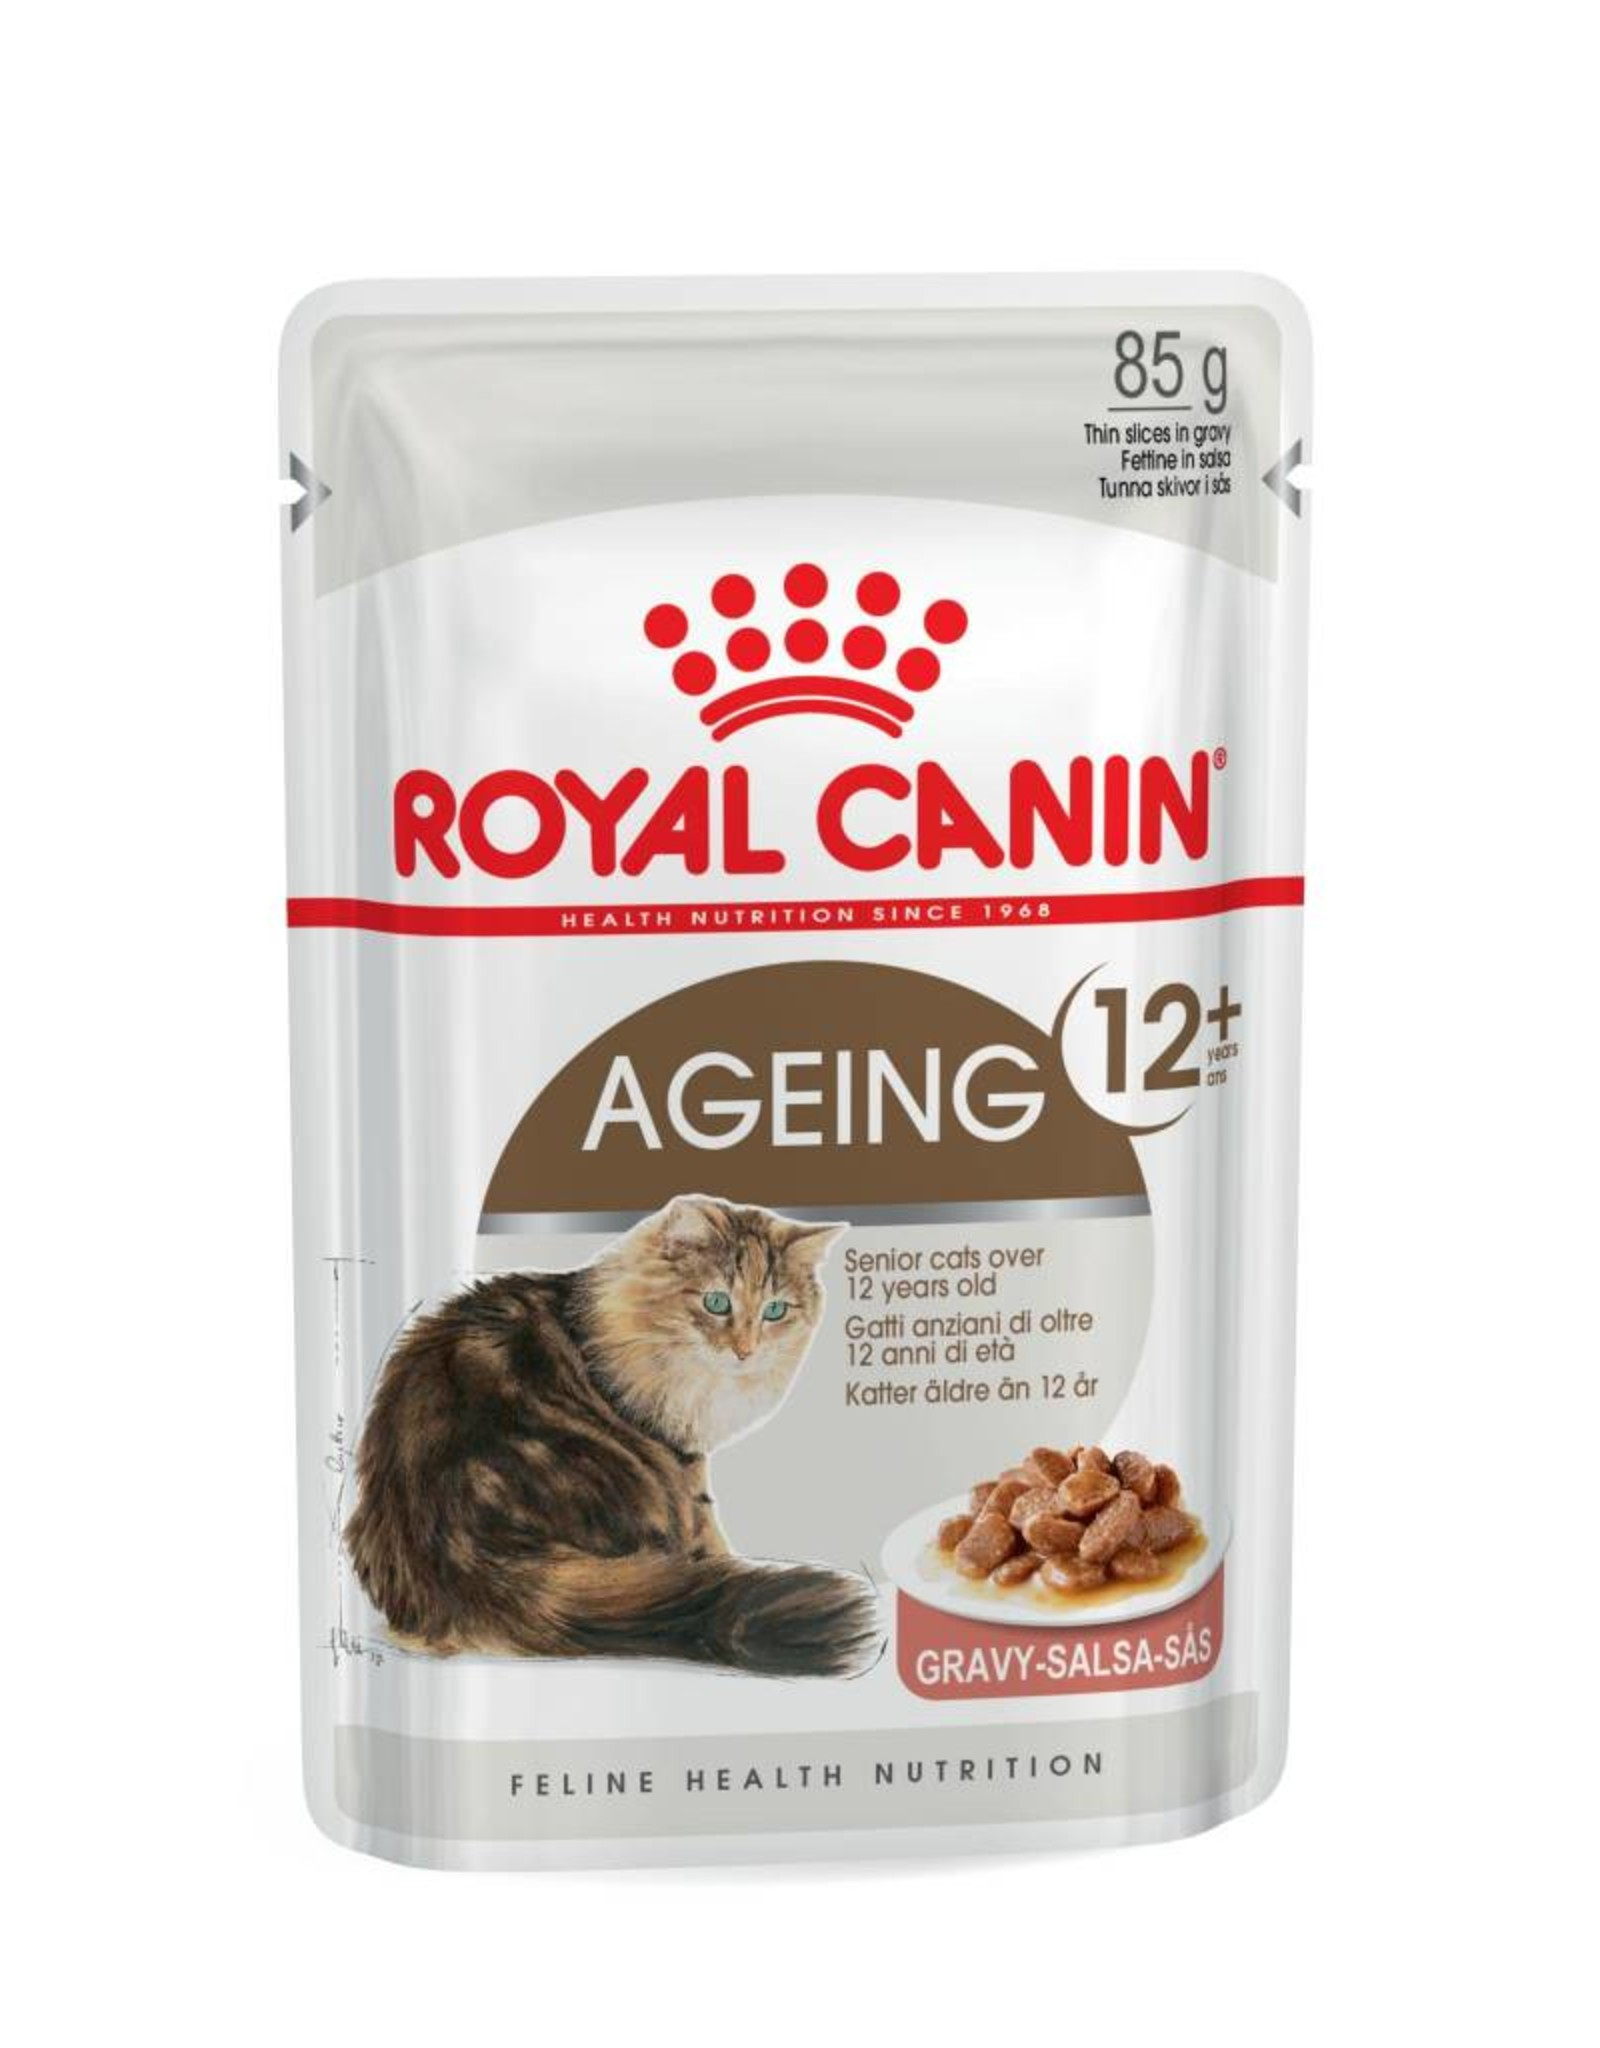 Royal Canin Ageing 12+ Senior Cat Wet Food Pouch with Gravy, 85g